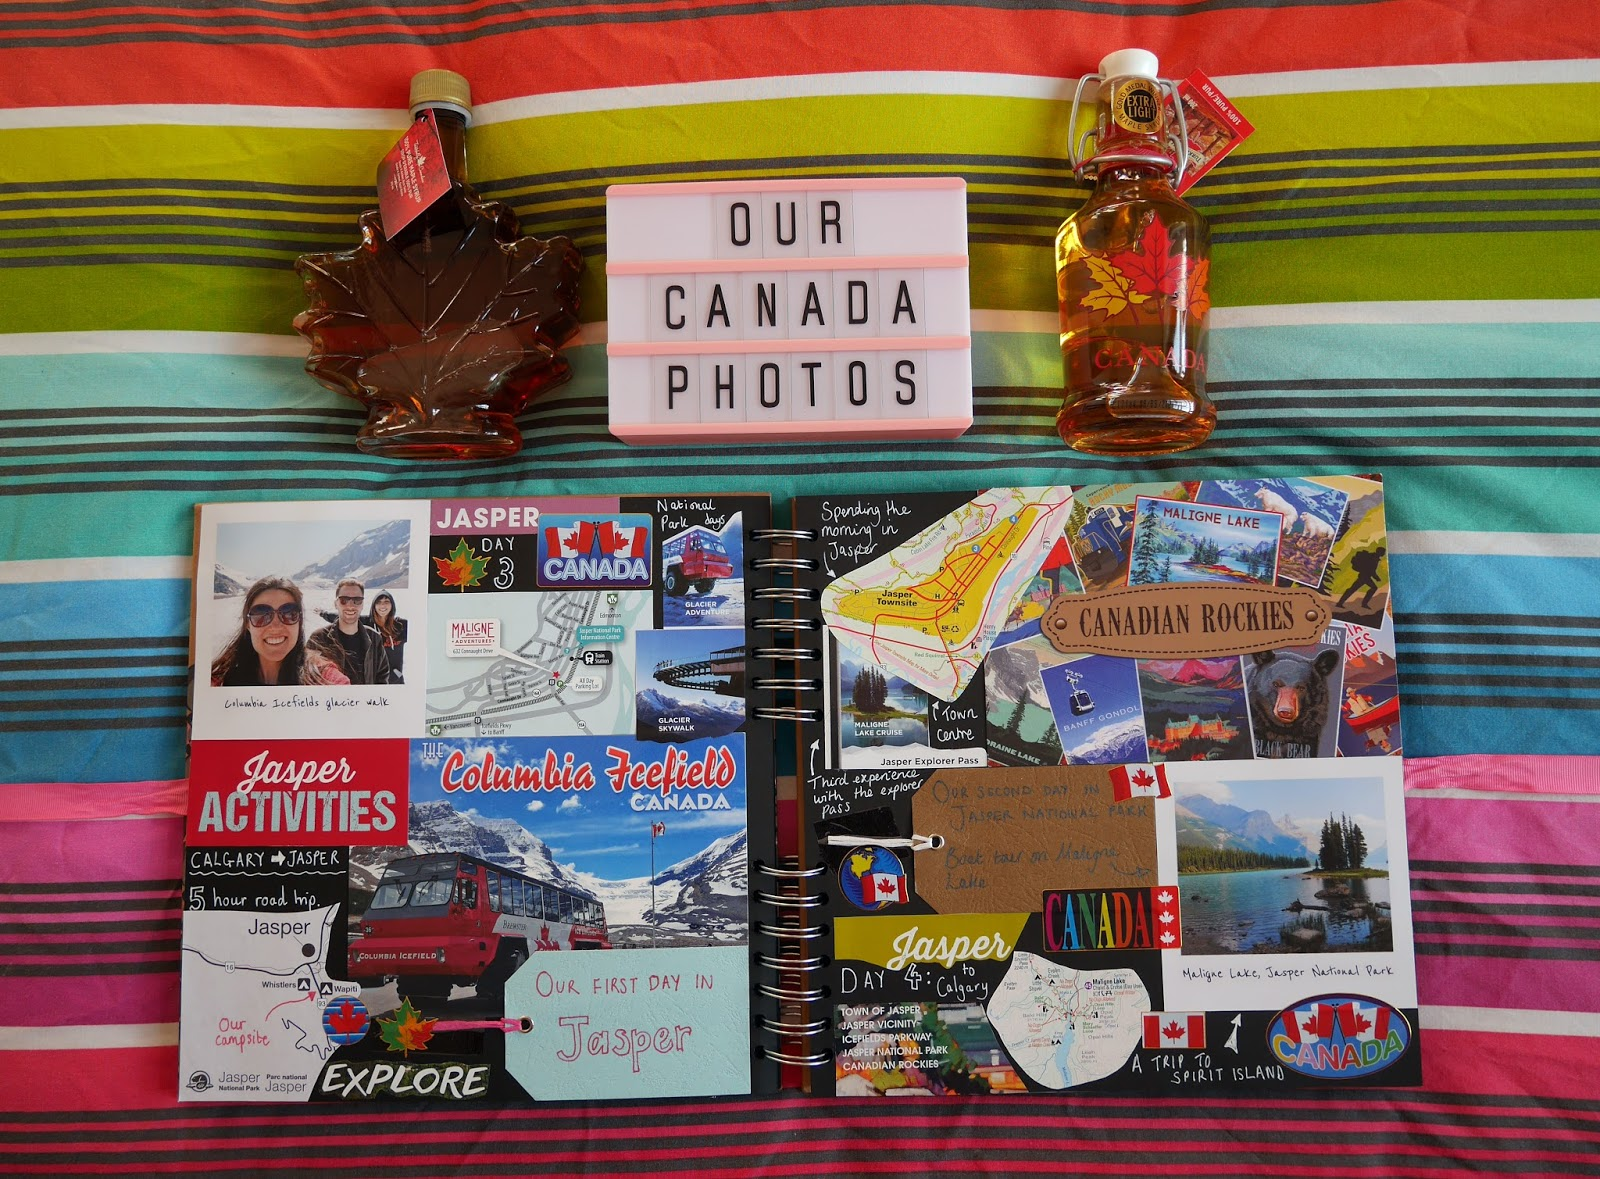 Canada travel scrapbook pages 3-4 (Jasper National Park) featuring Printiki's retro prints